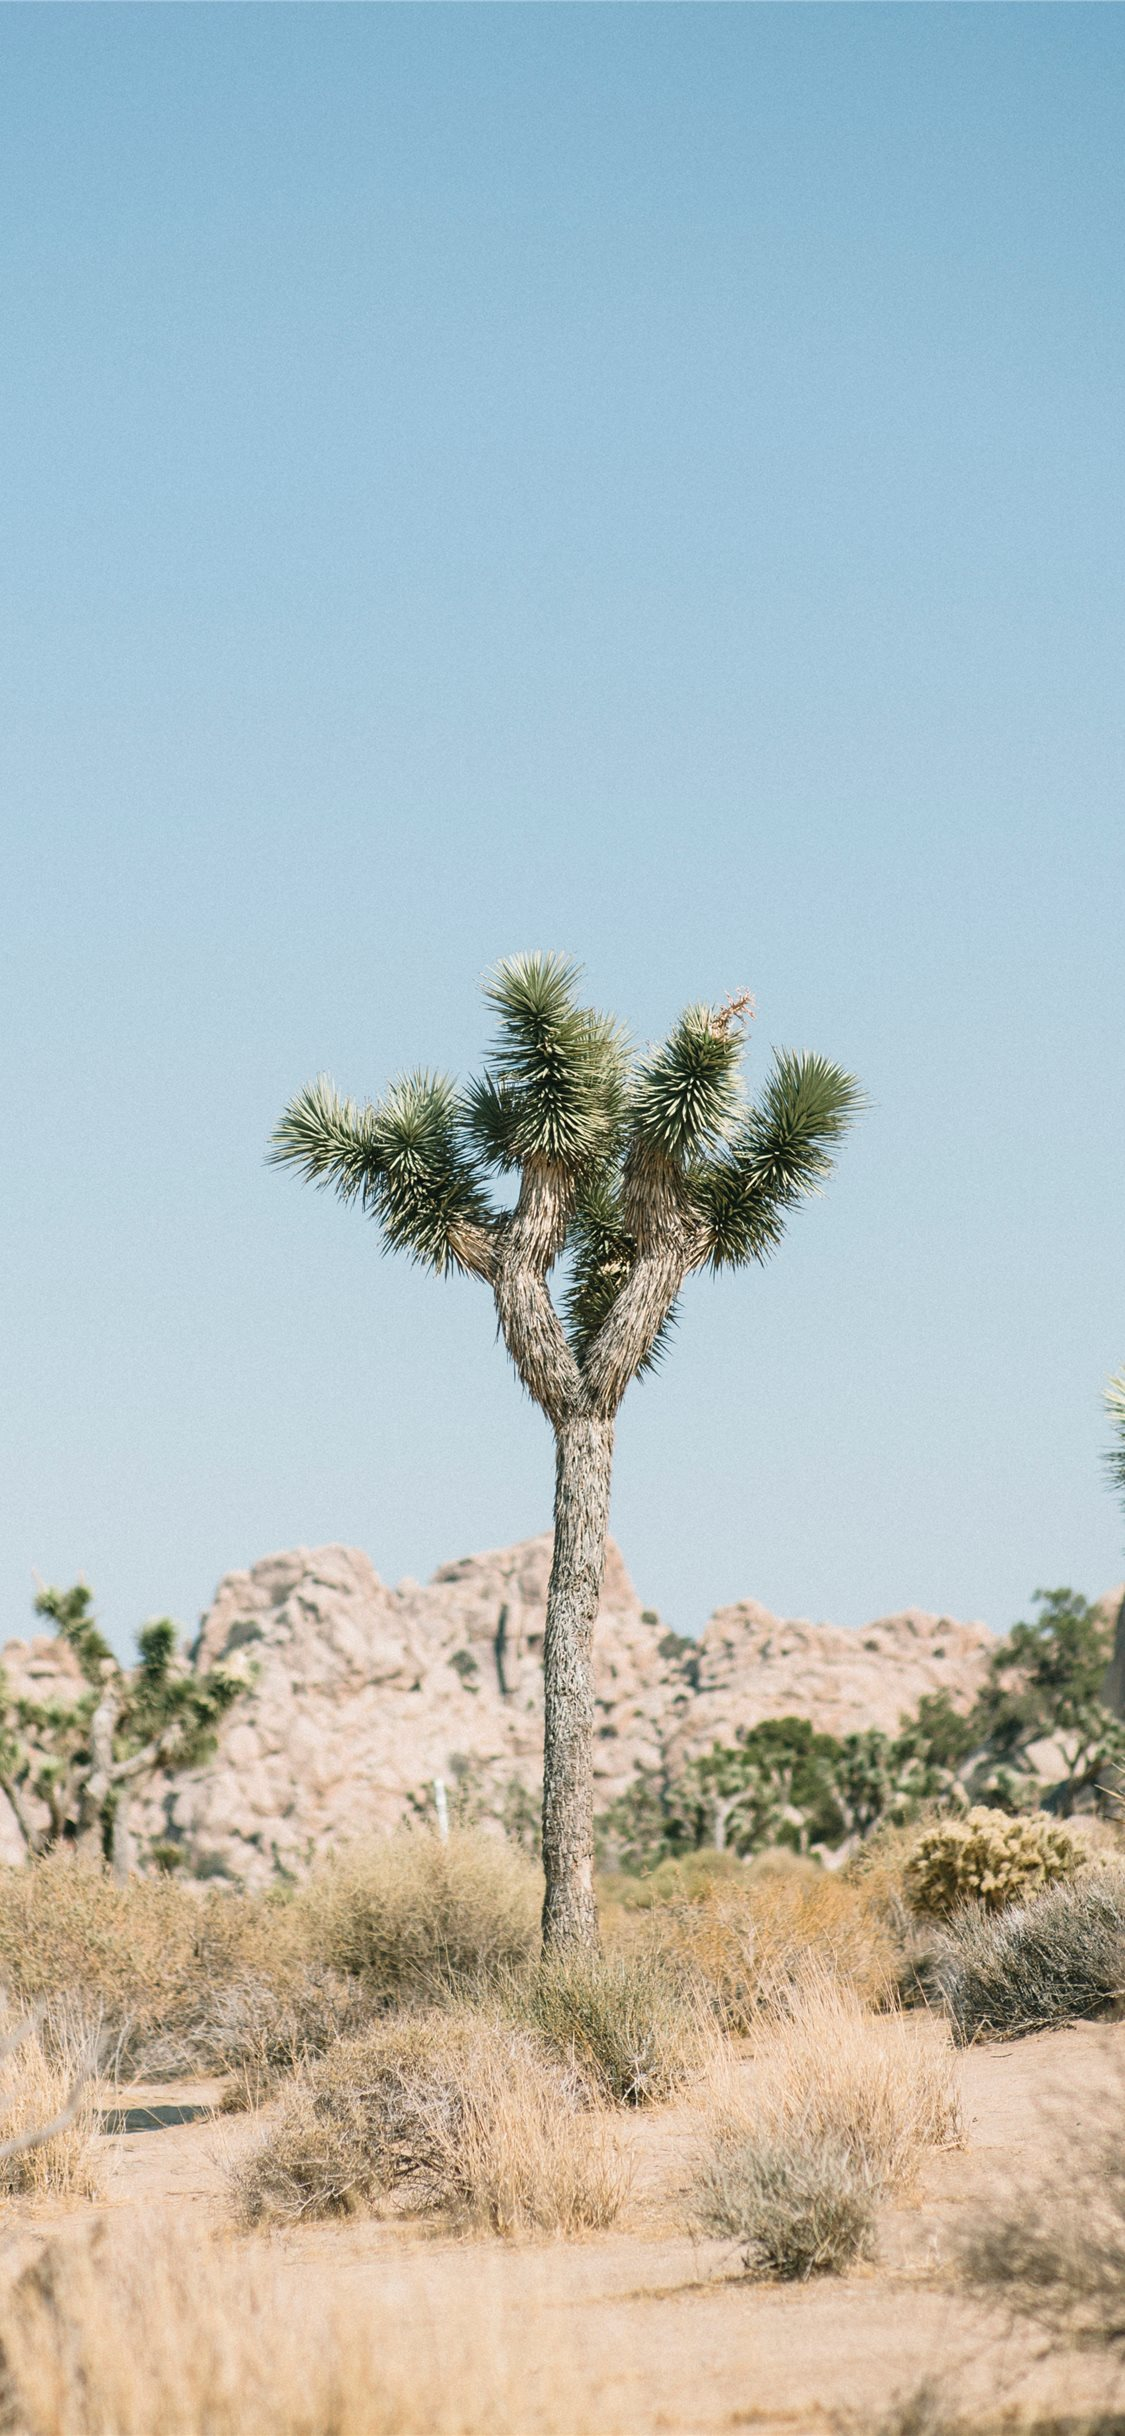 Joshua Tree National Park  United States iPhone X wallpaper